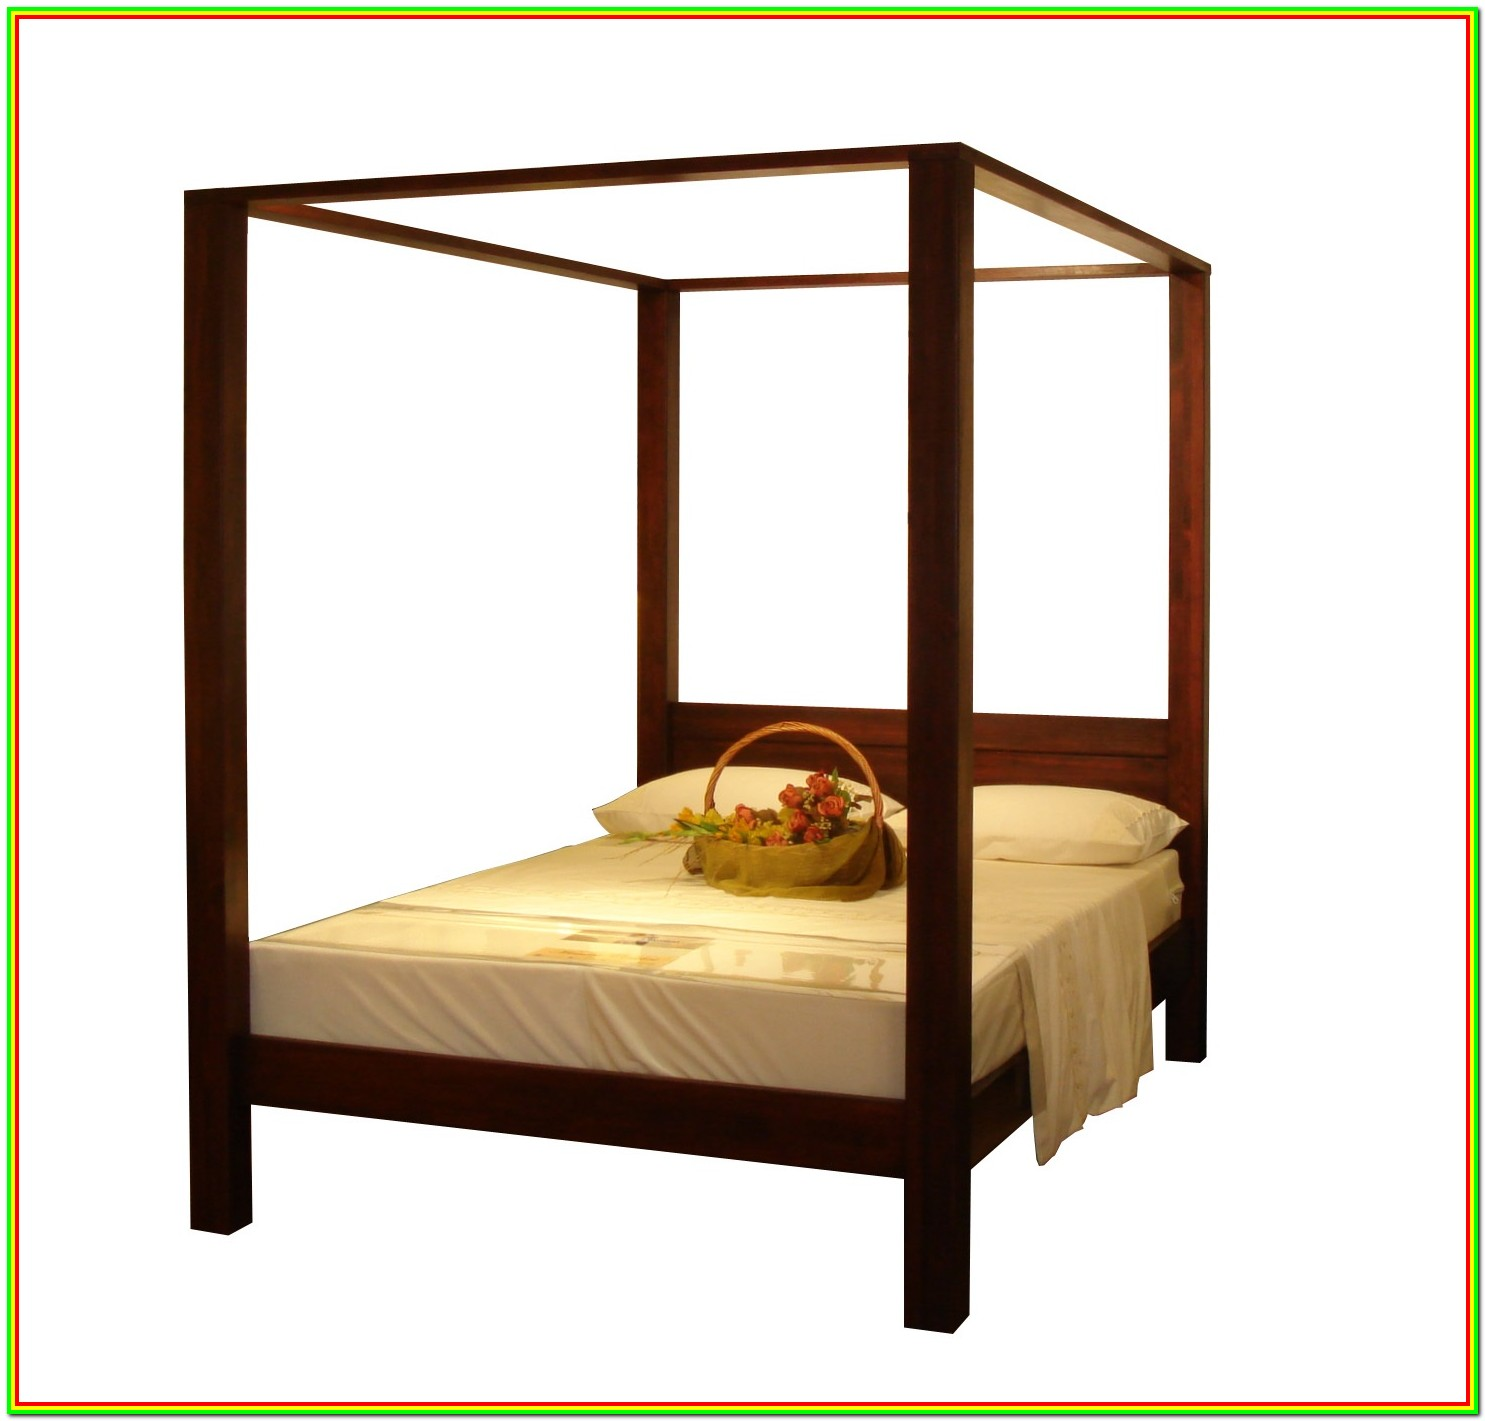 Bed Frame With Storage Drawers Singapore